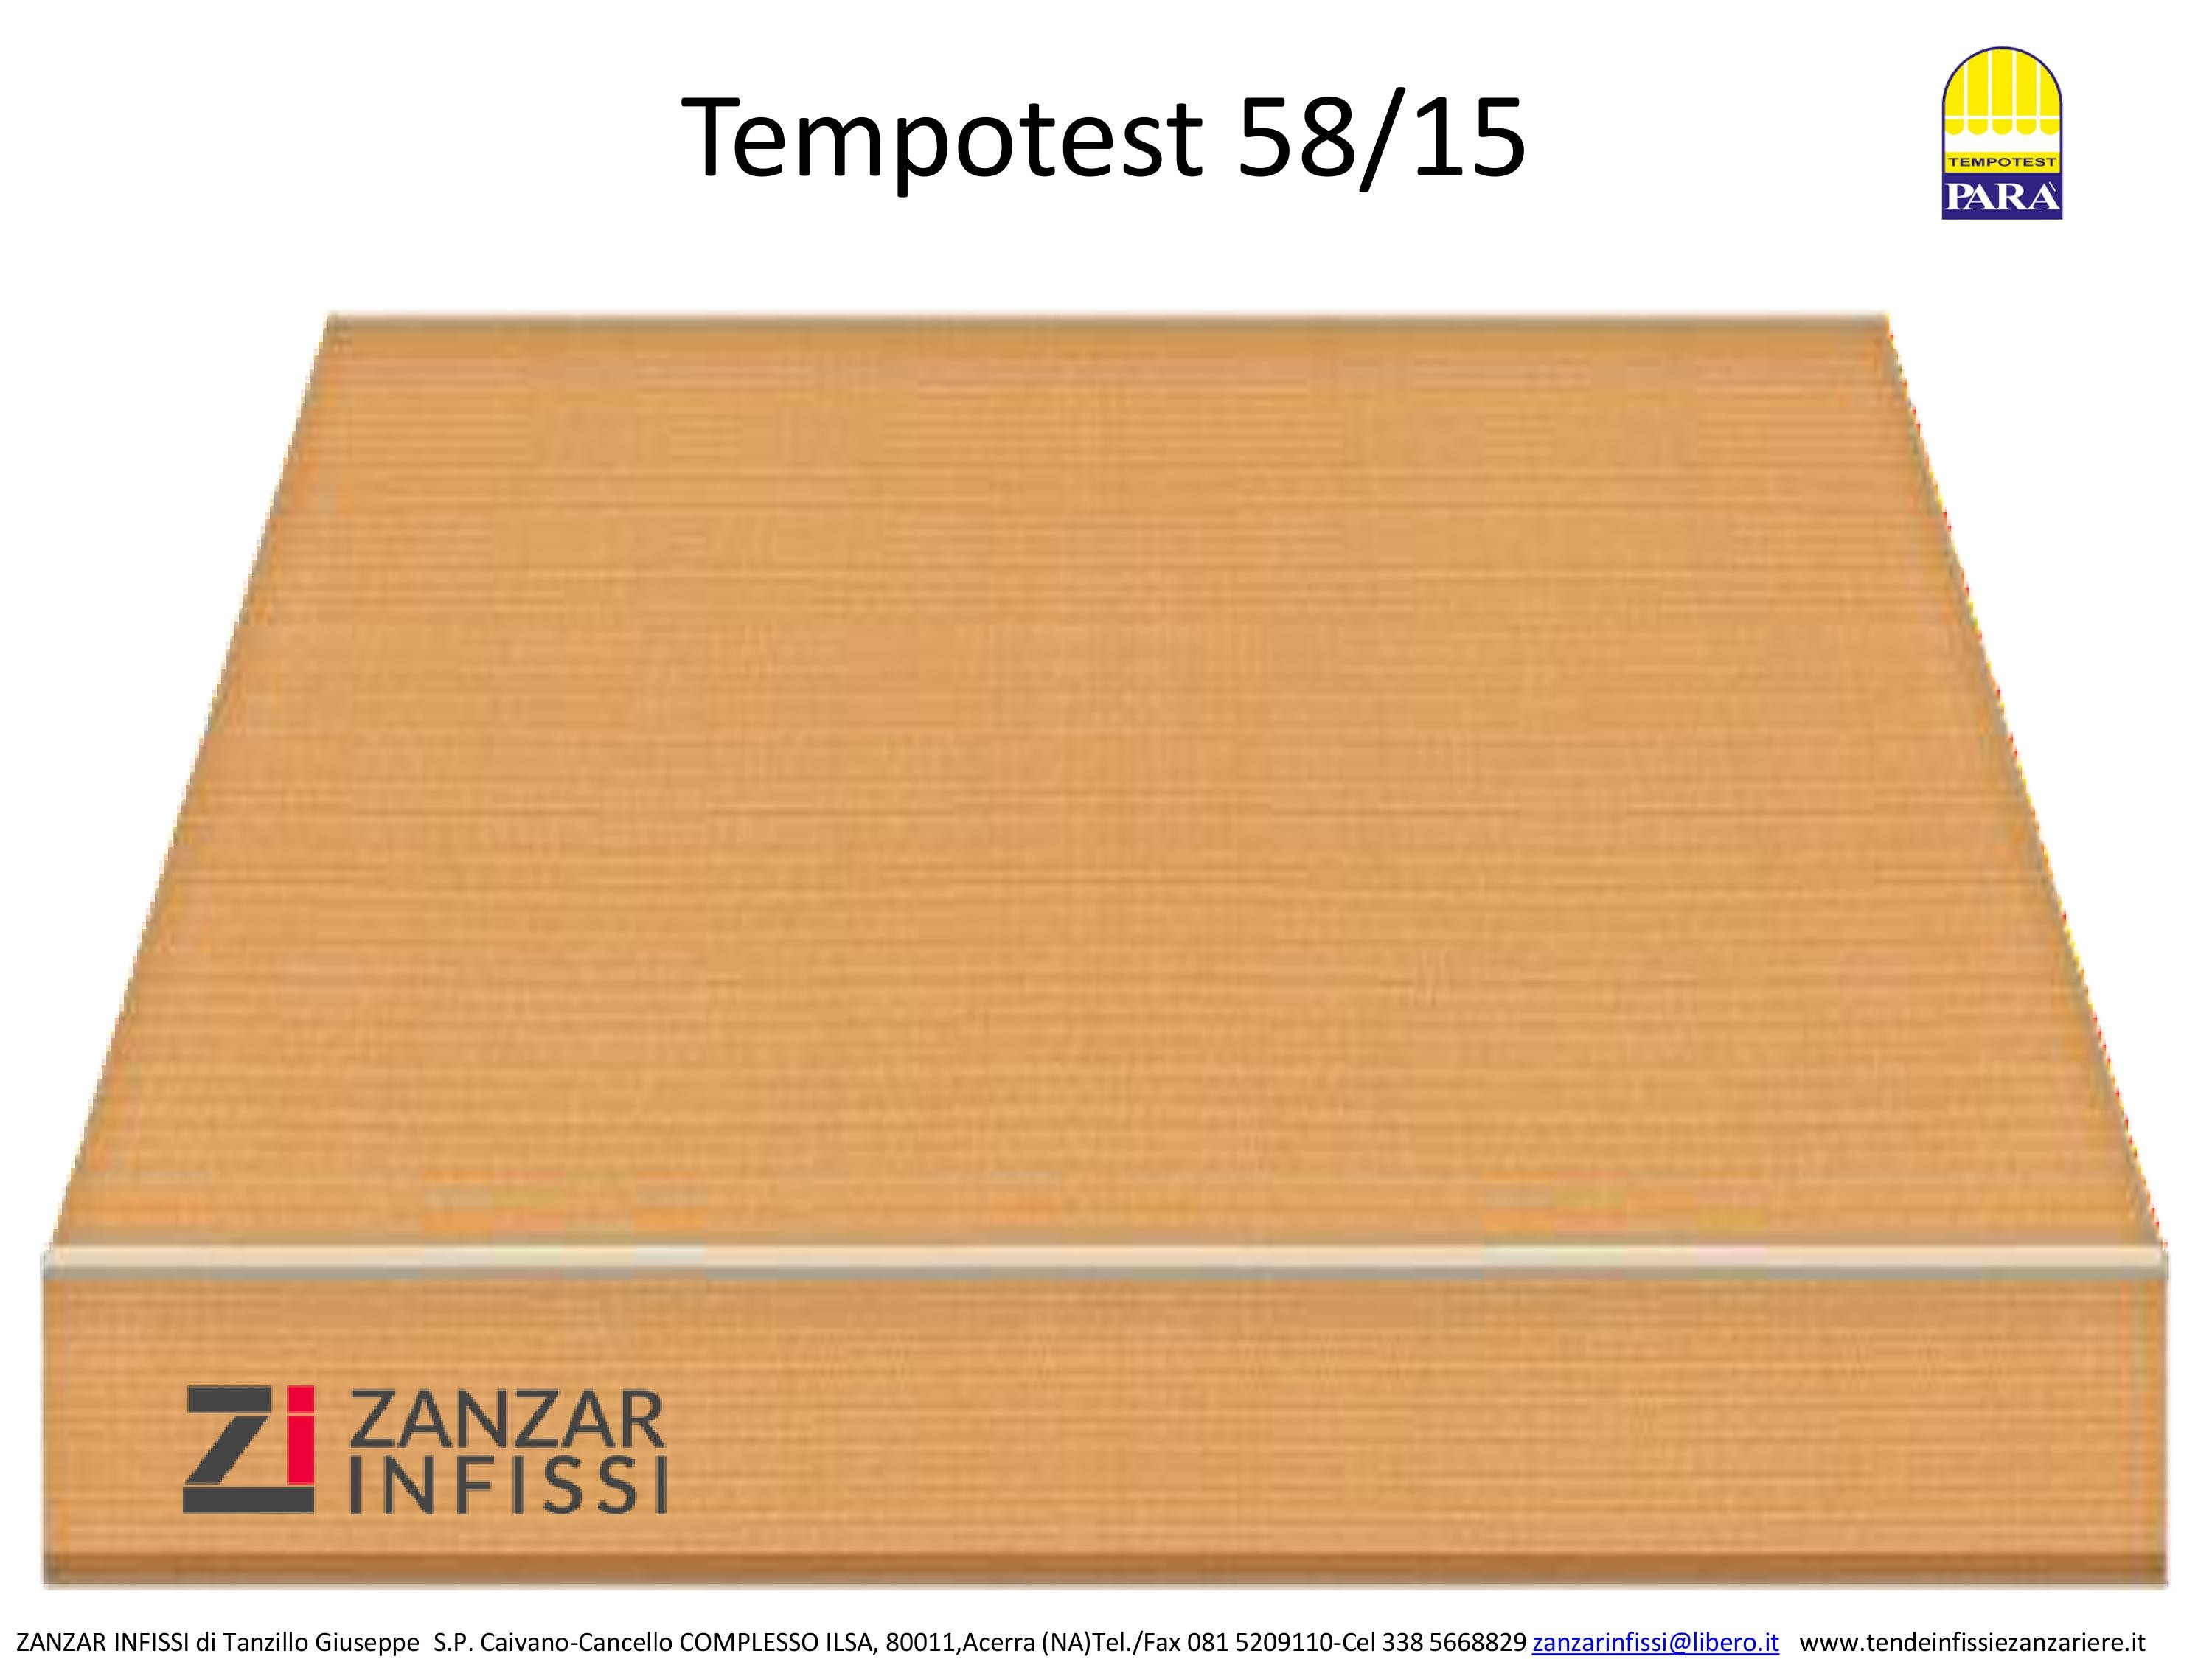 Tempotest 58/15